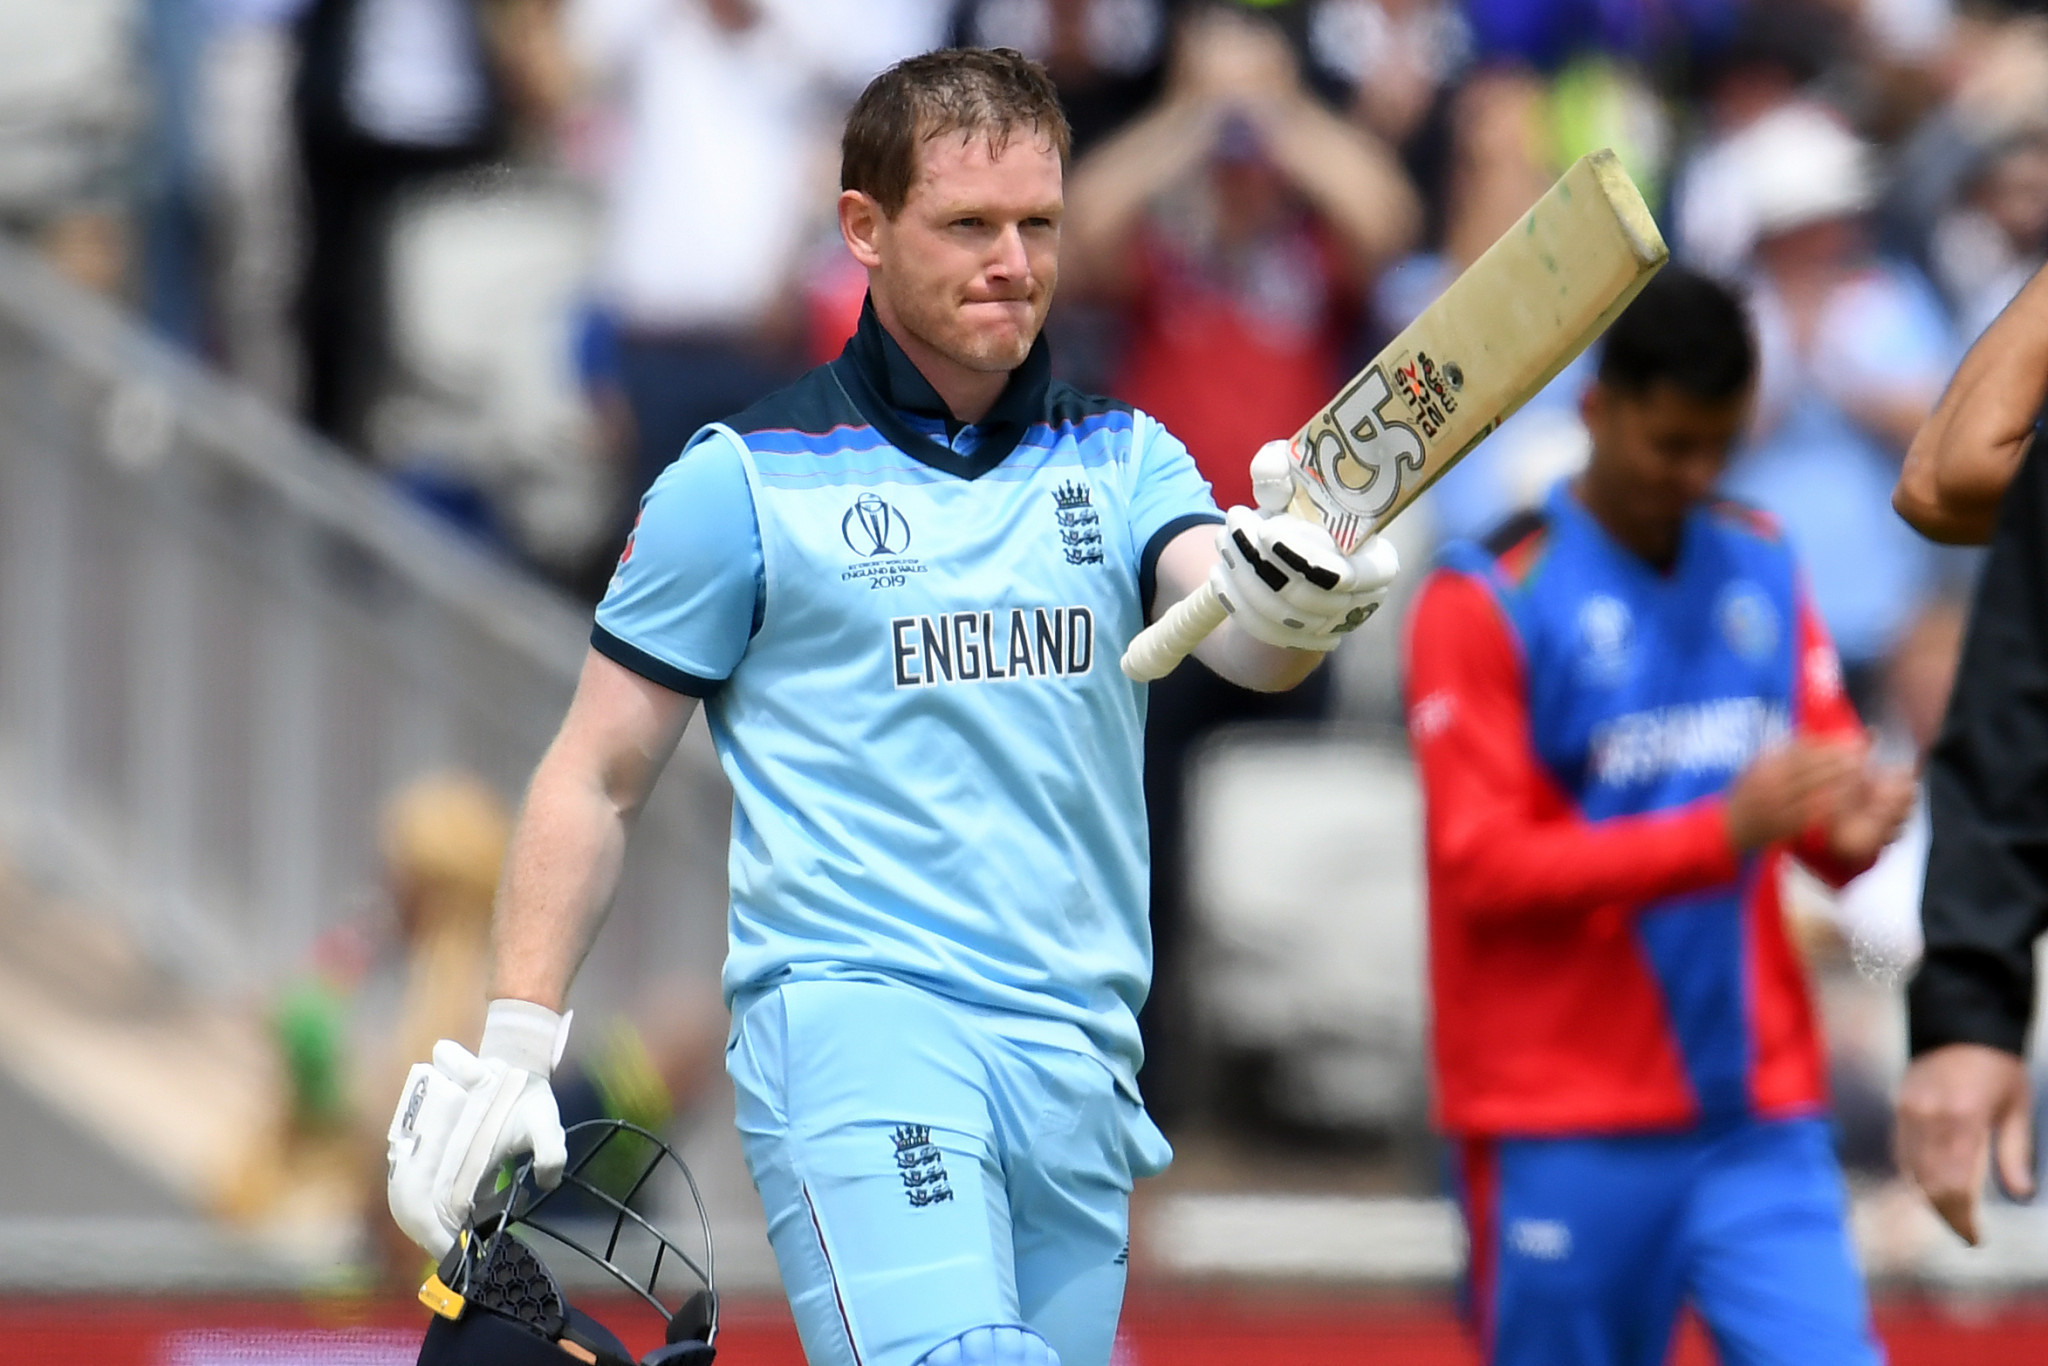 Eoin Morgan hit 17 sixes for England against Afghanistan at the Cricket World Cup ©Getty Images